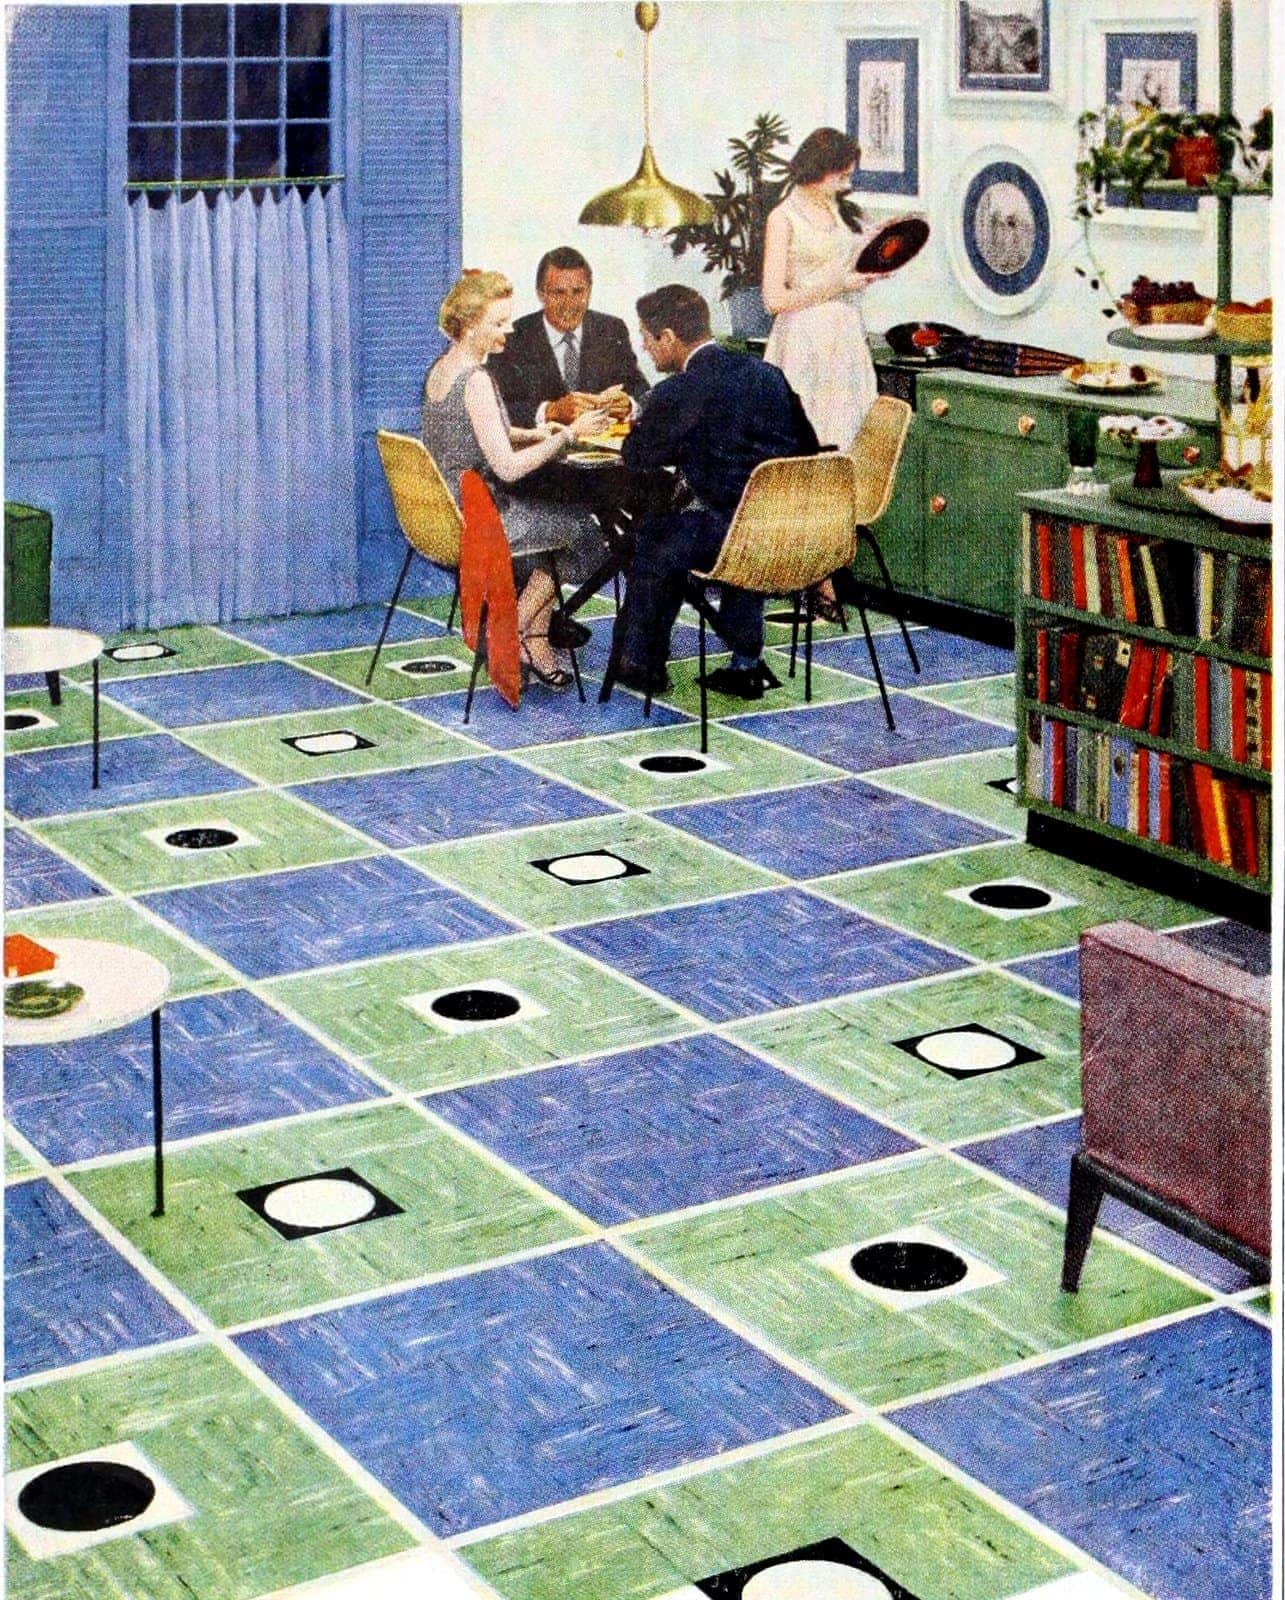 Retro patterned floors in blue and green from 1953